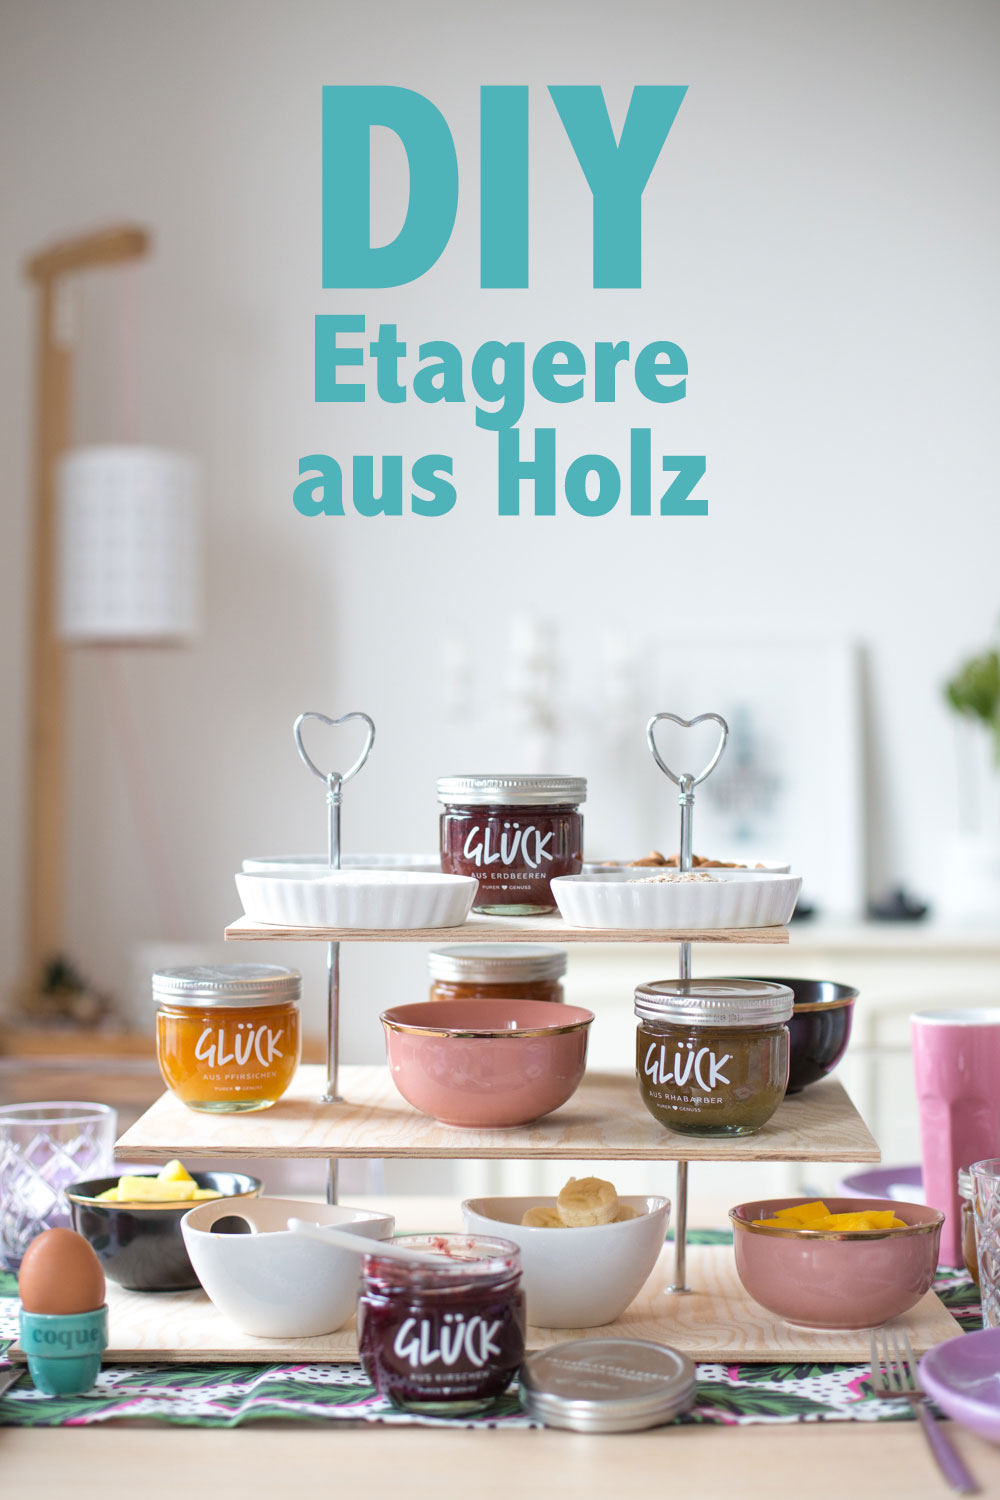 DIY-Etagere-Pinterest